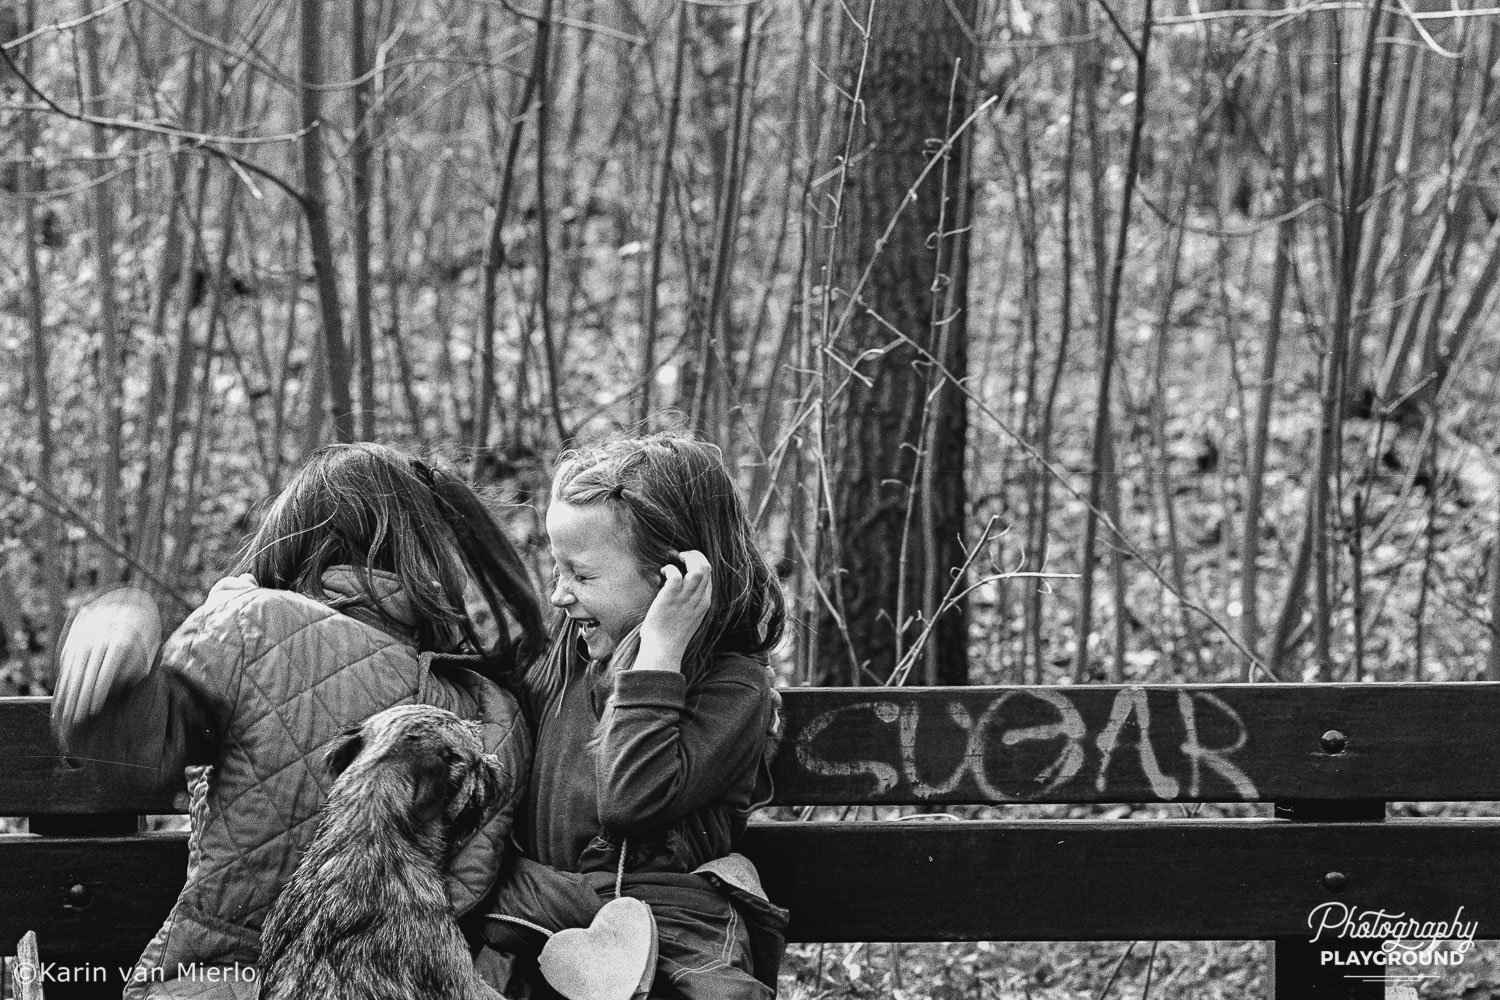 candid photography tips, people photography, candid pics | Photo: 2 kids and a dog in the forest, The Netherlands ©Karin van Mierlo, Photography Playground